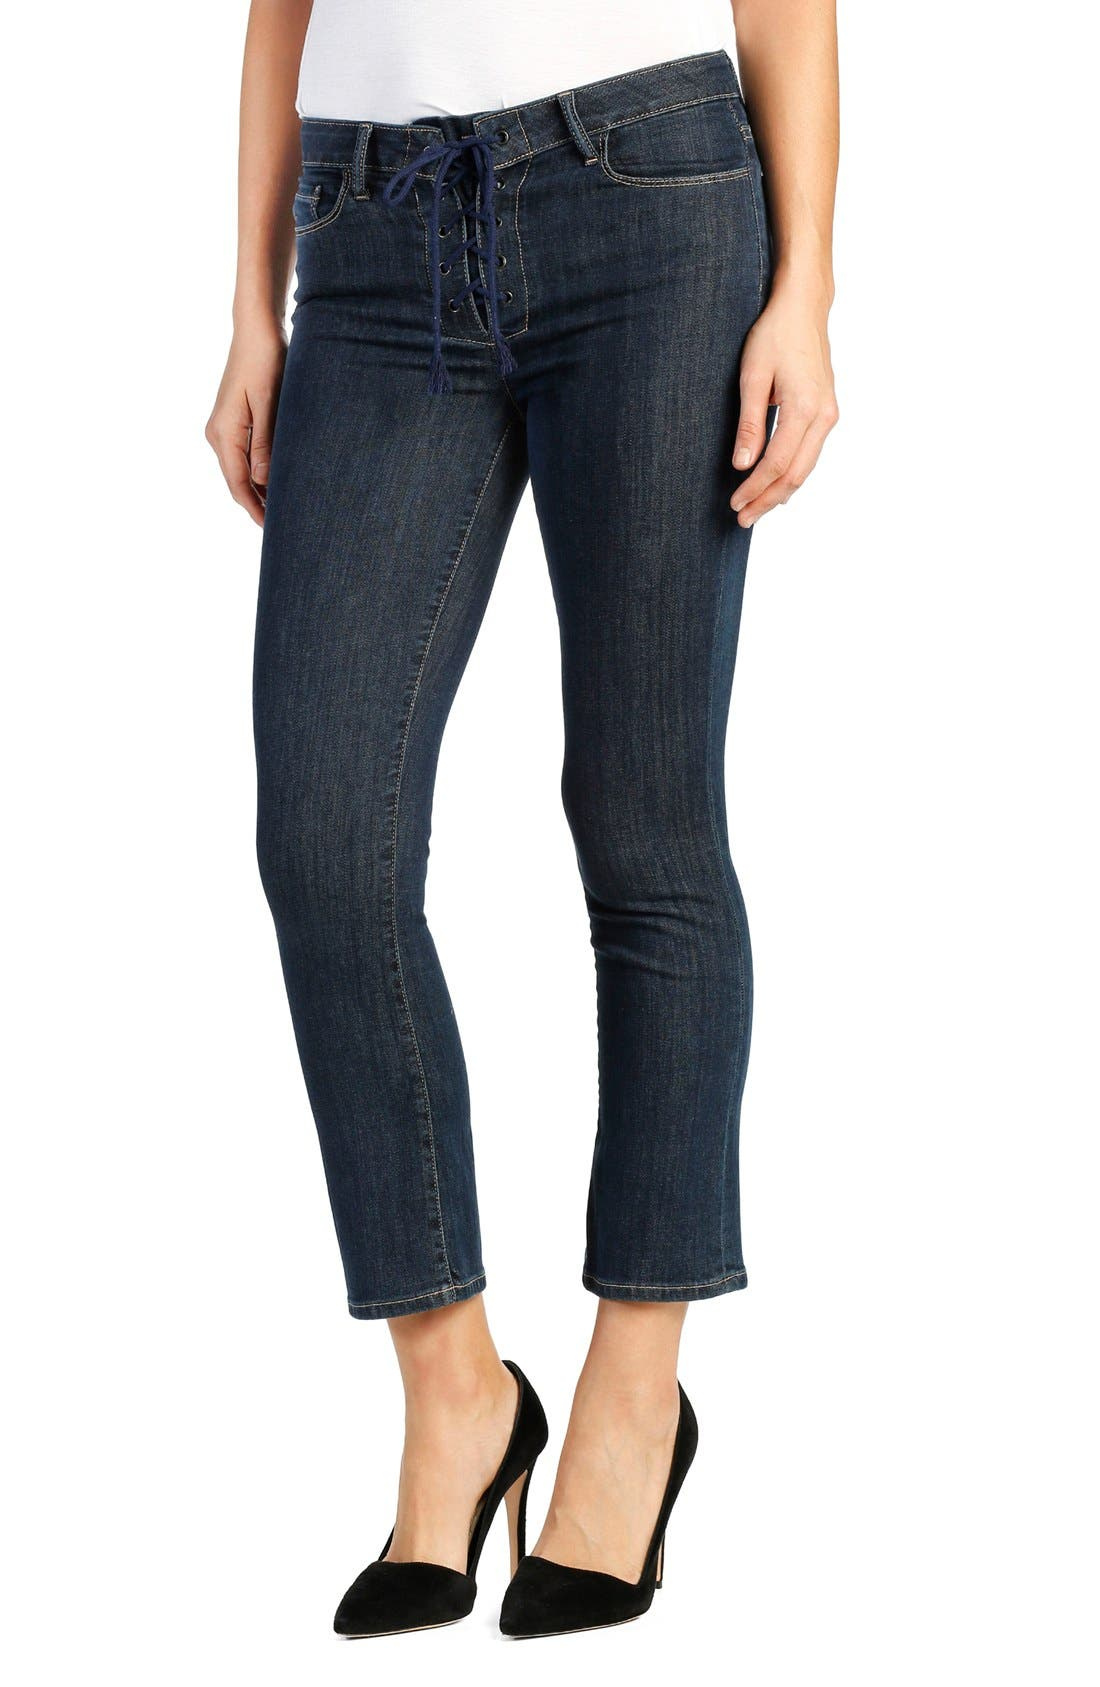 Alternate Image 1 Selected - PAIGE Legacy - Colette High Rise Lace-Up Crop Jeans (Hanley)